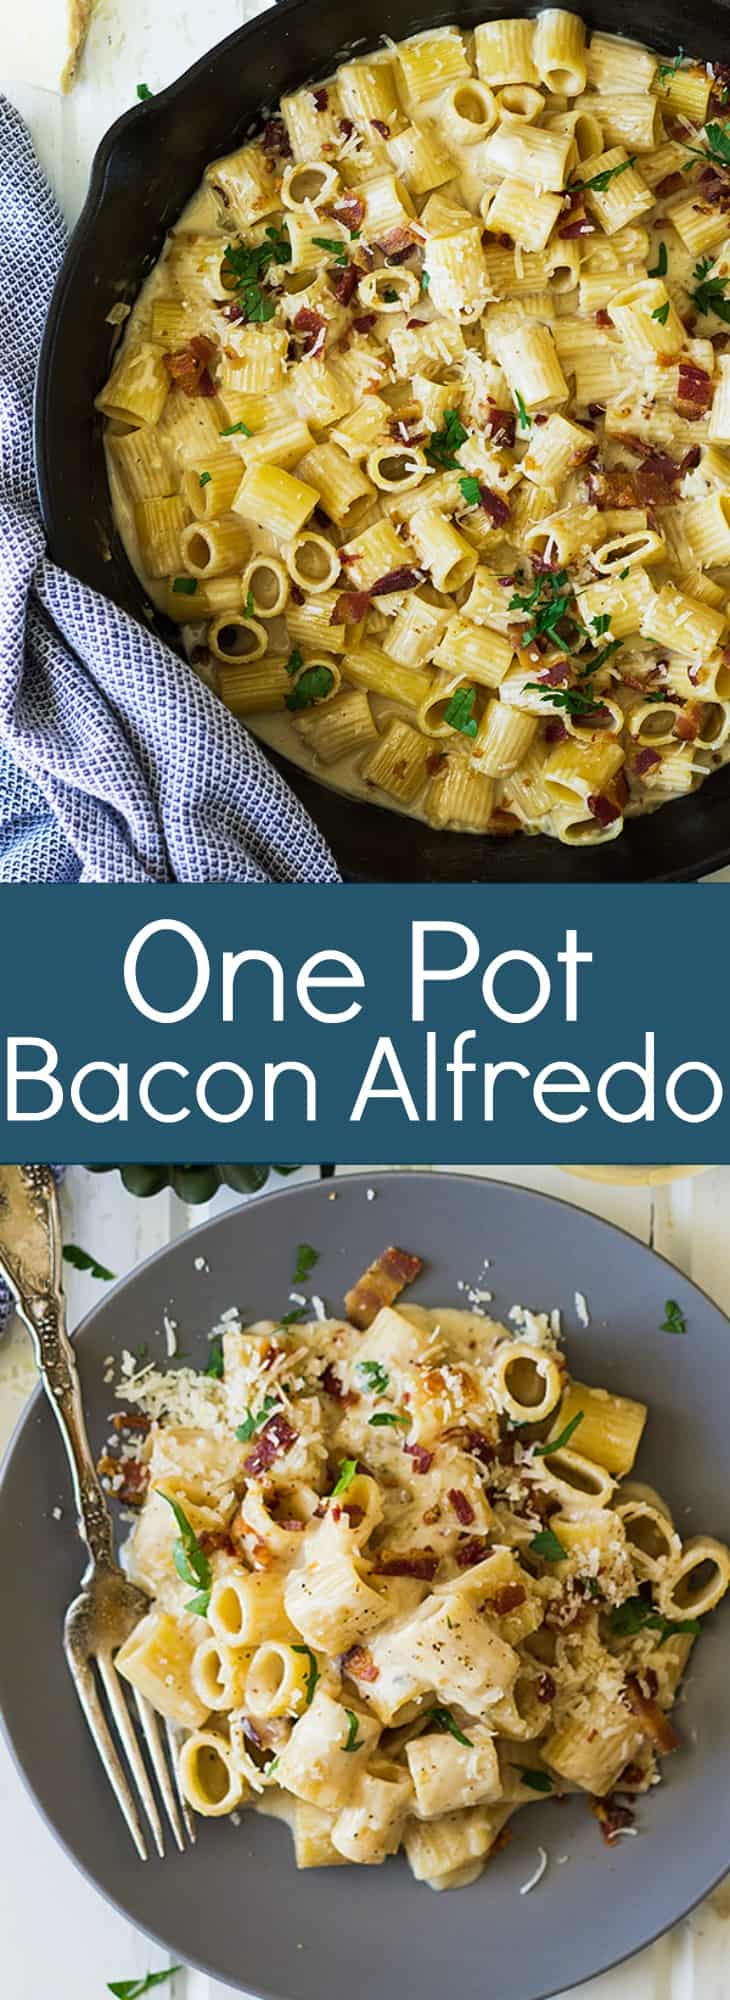 This One Pot Bacon Alfredo is a quick and easy weeknight meal that's full of flavor! | www.countrysidecravings.com